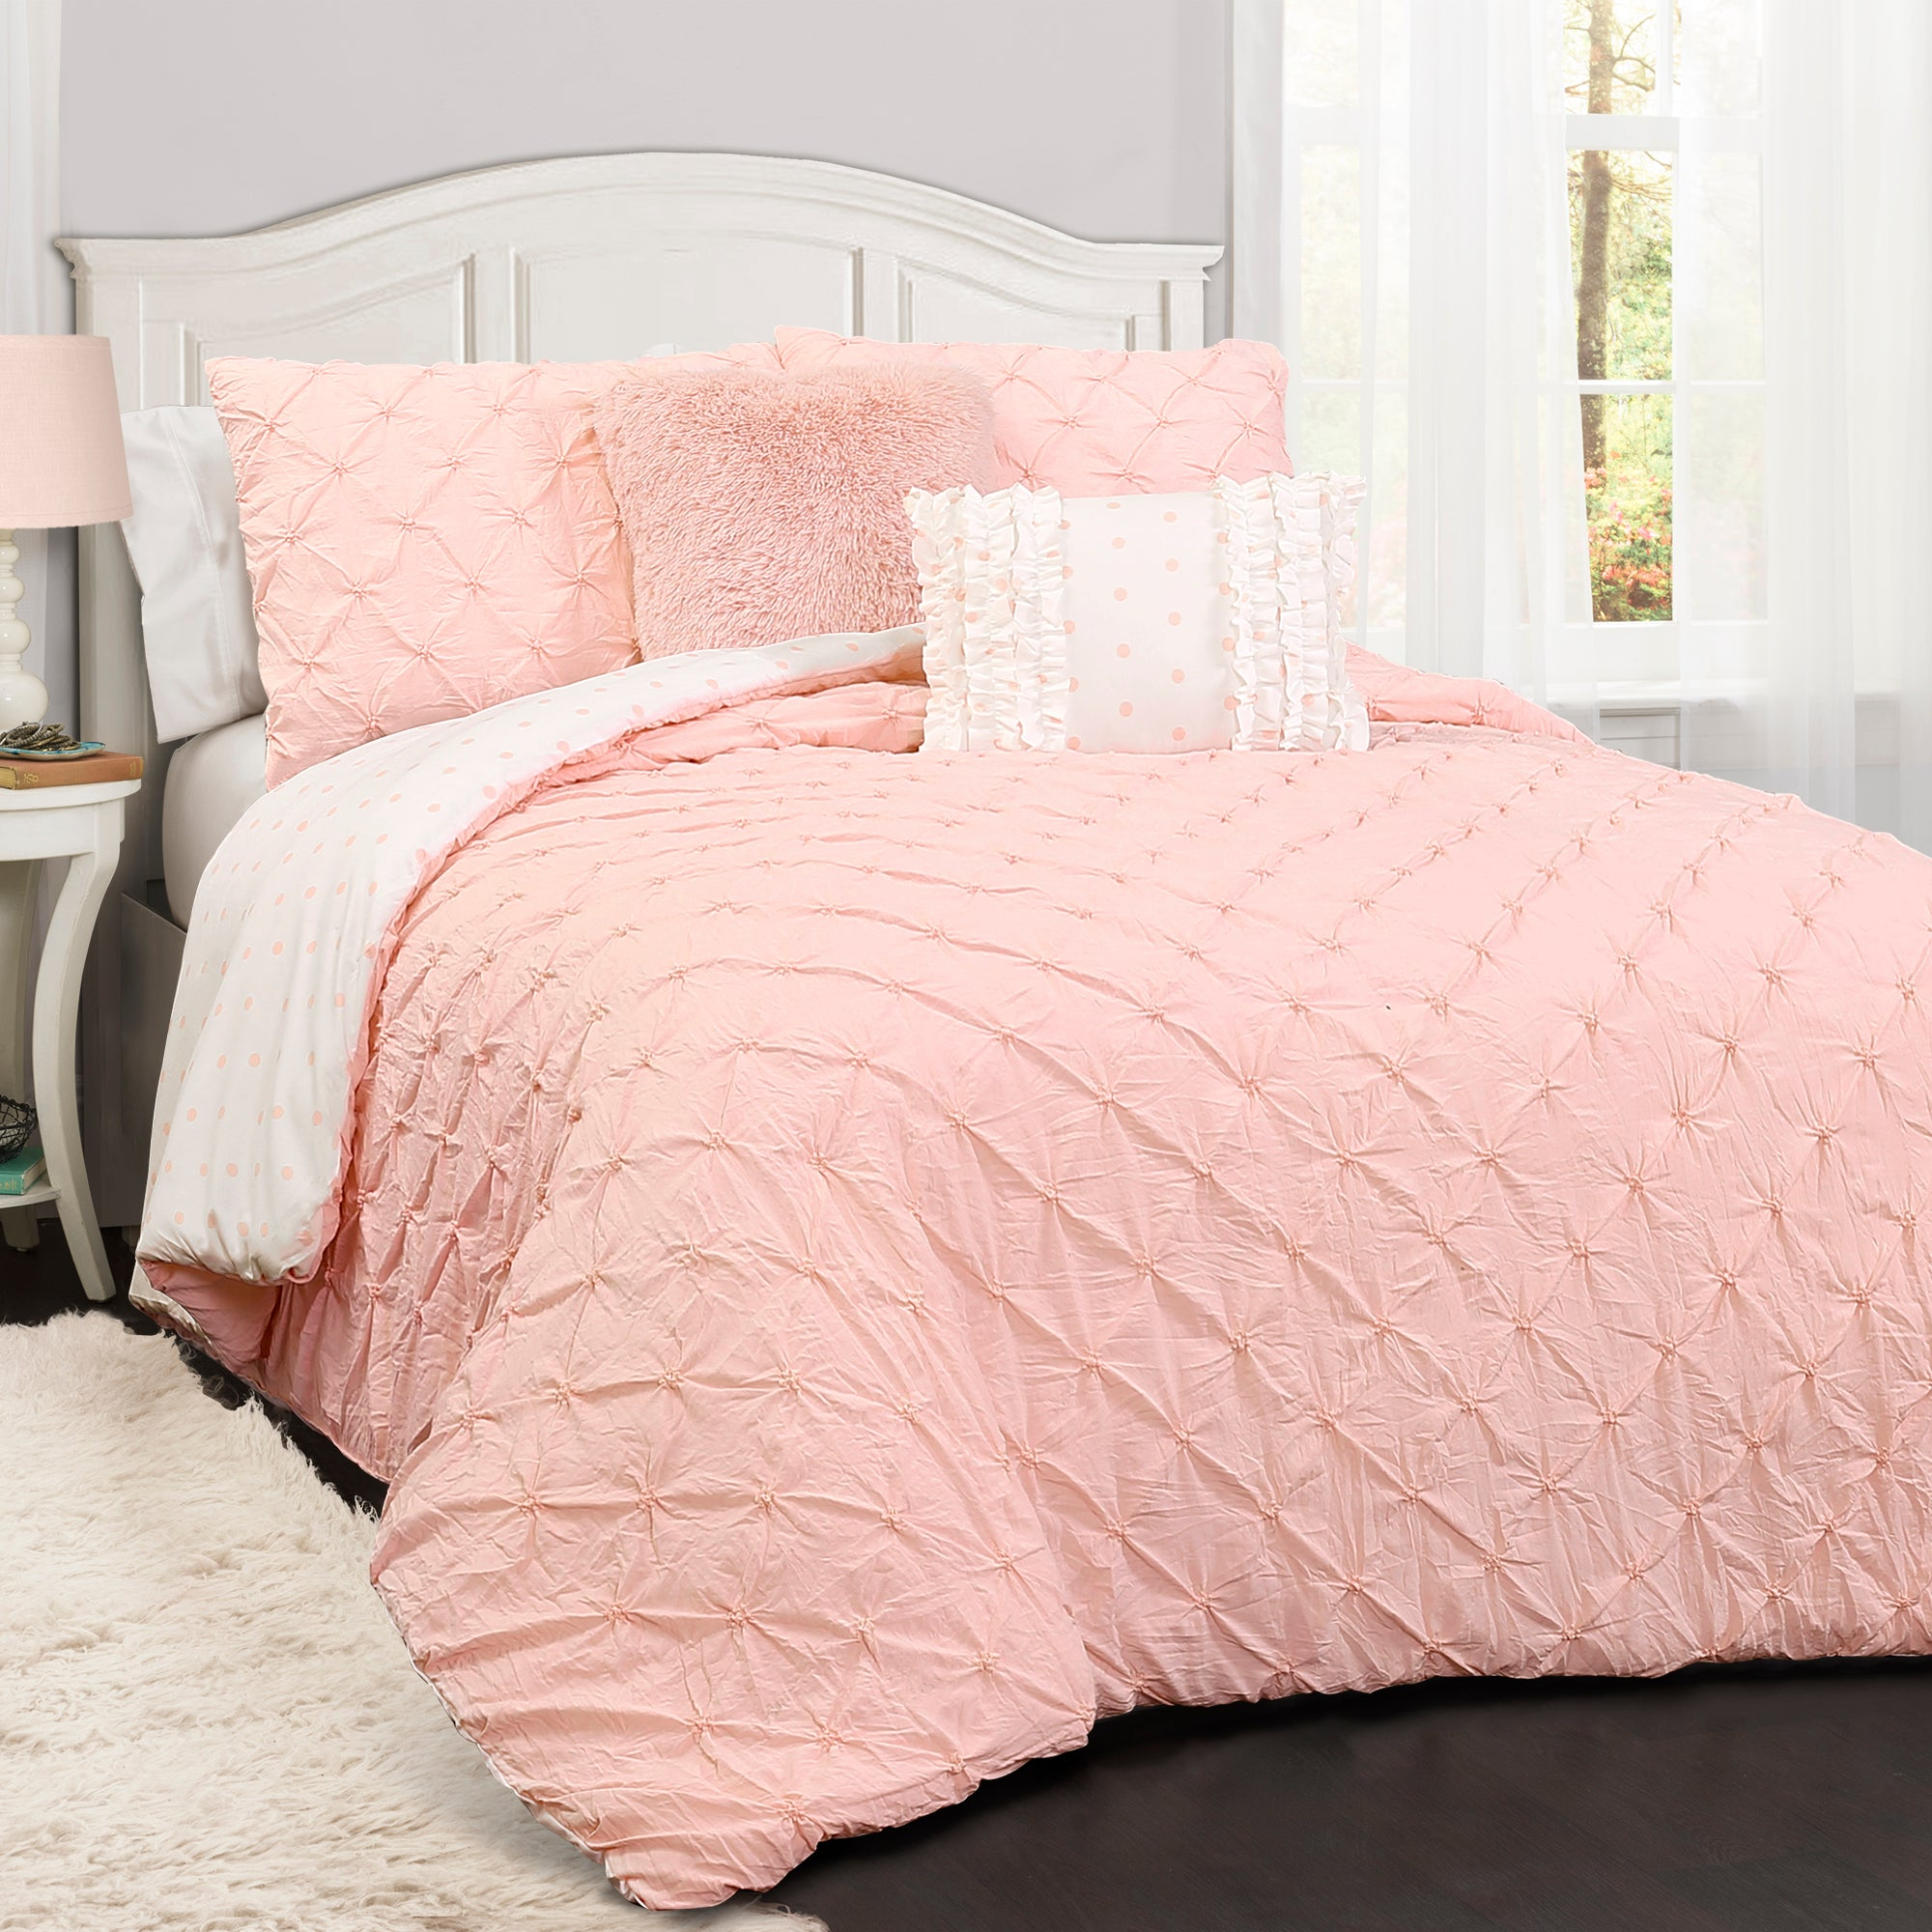 comforter peiranos fences full pertaining image vs white of bedding pink bed for to sets queen and